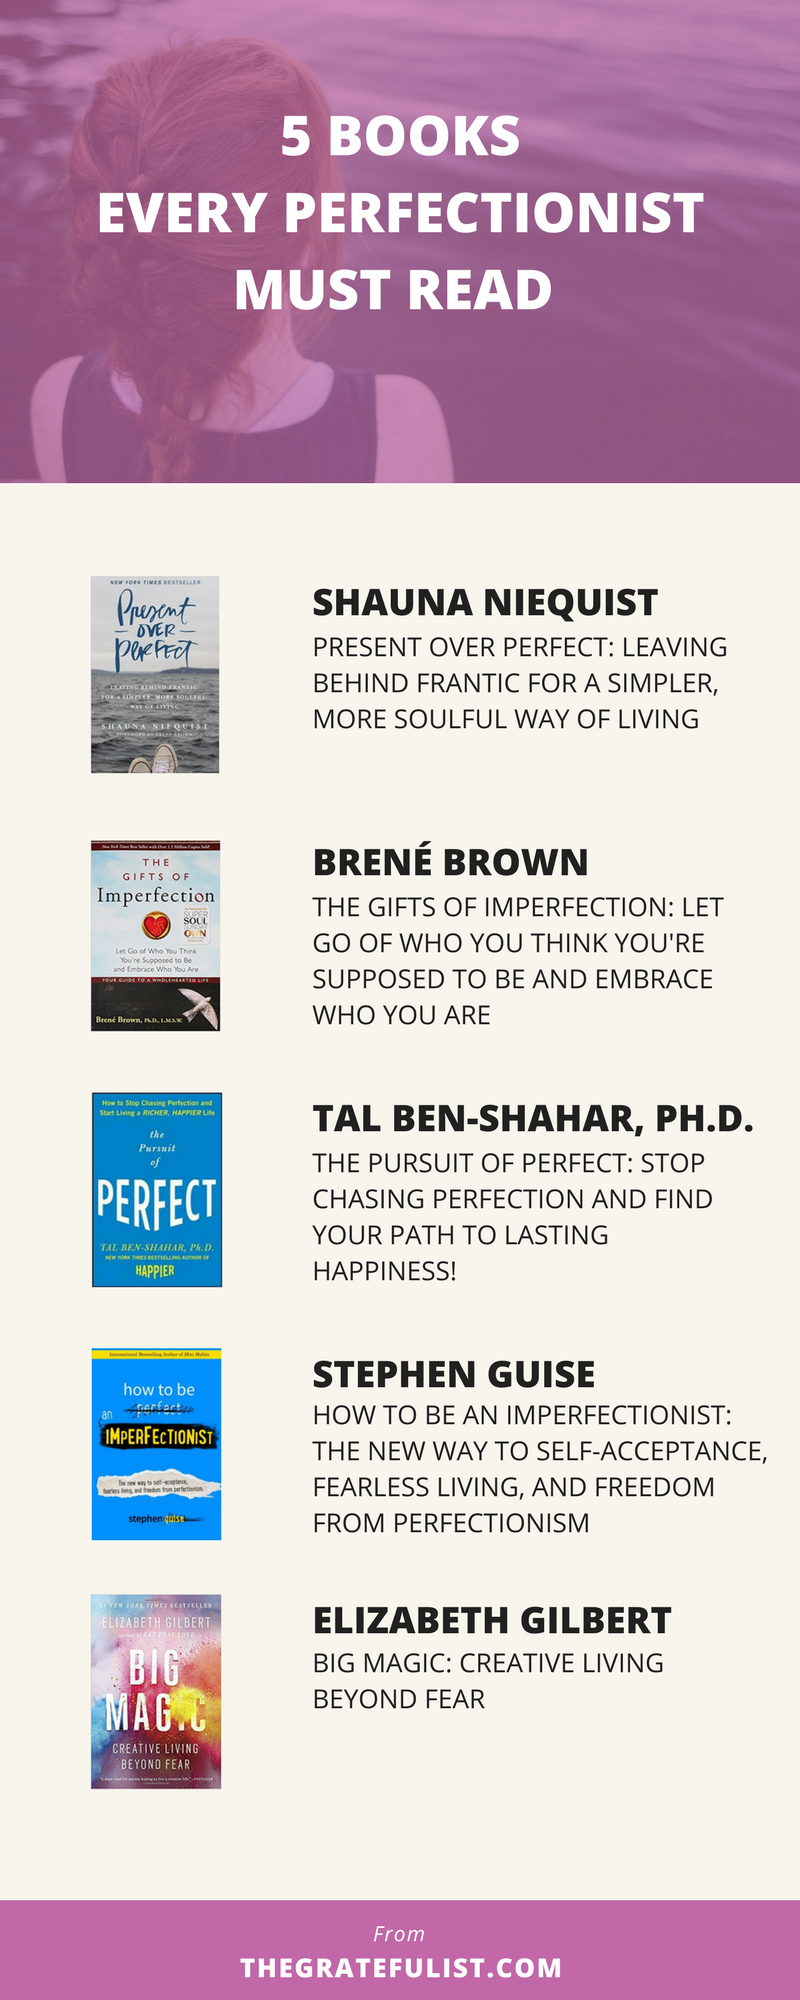 Tired of being a perfectionist? Sick of the fact that your perfectionism makes you hustle for your self-worth? These 5 books are must-reads if you want to let go of your perfectionism. Plus, there's a freebie waiting for you! Just click on through.